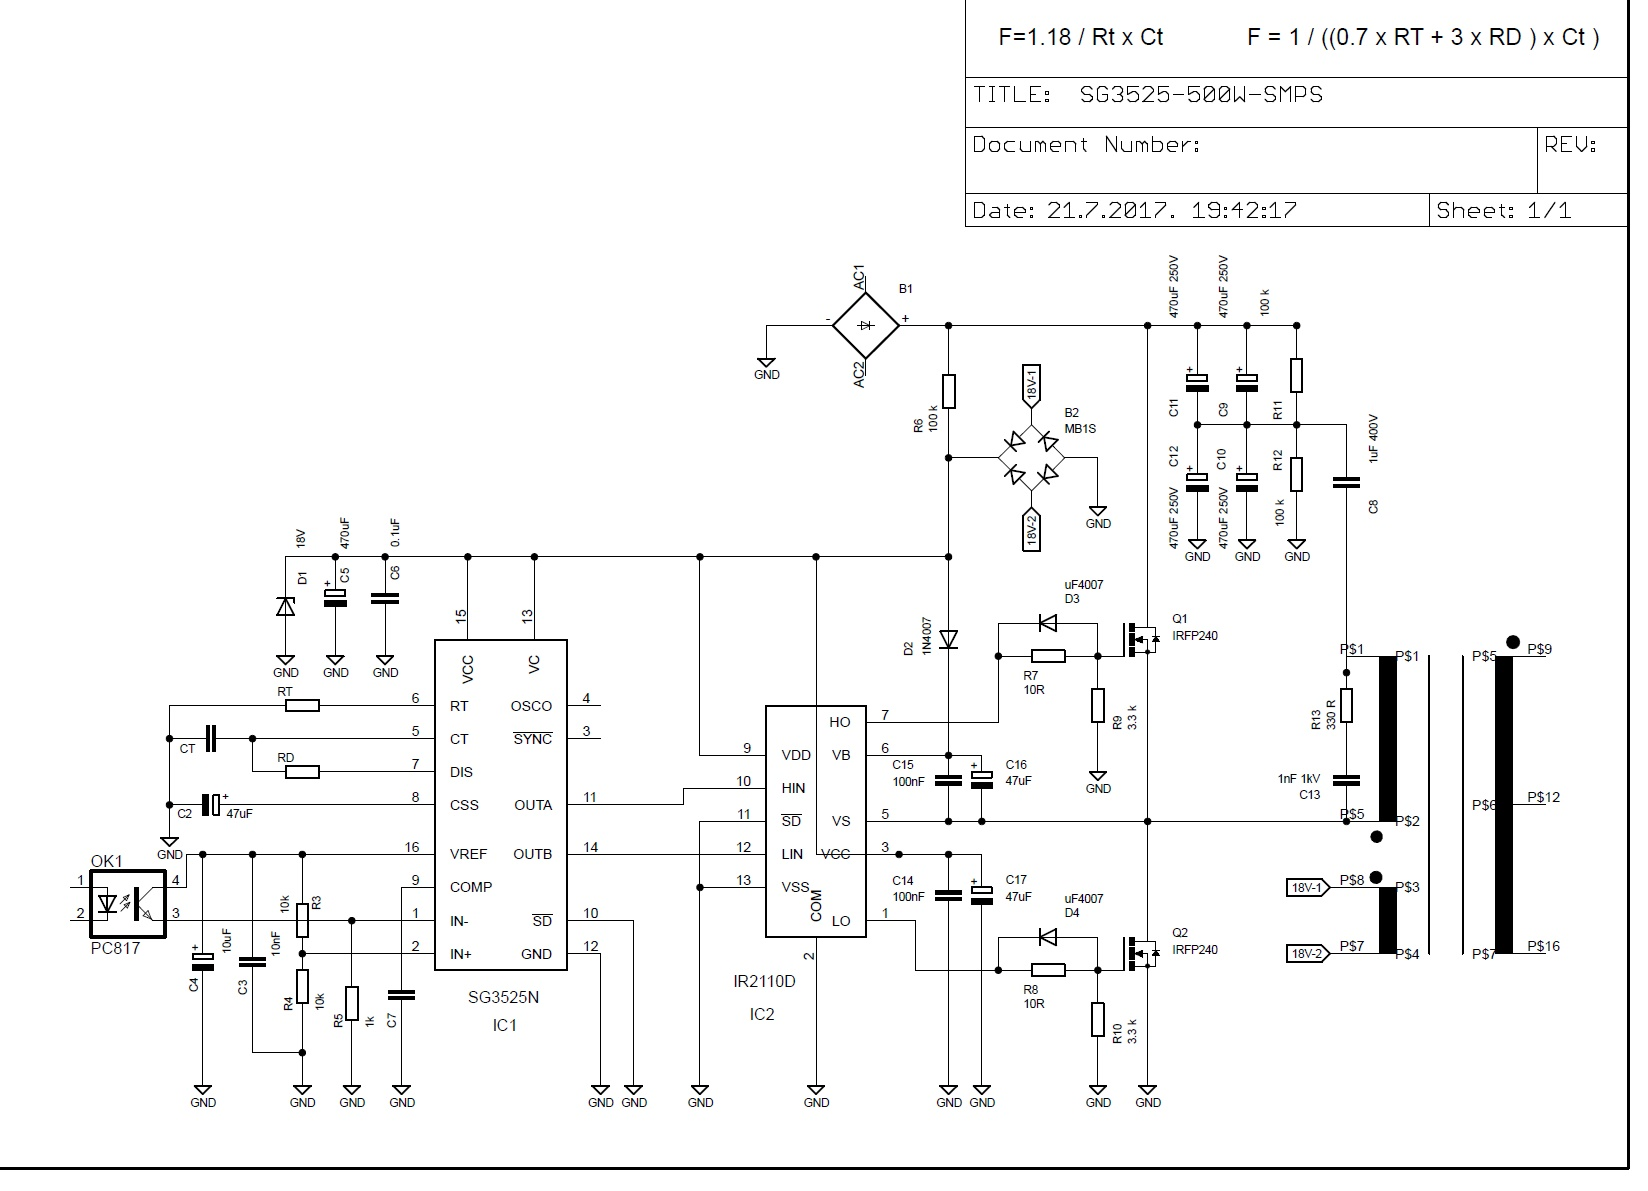 Nenad Grujic Smps Circuit Diagram Using Mosfet Some Have Snubber On That Fet One Use Diode And Also Not Nothing What Is The Best Options For Long Stable Work